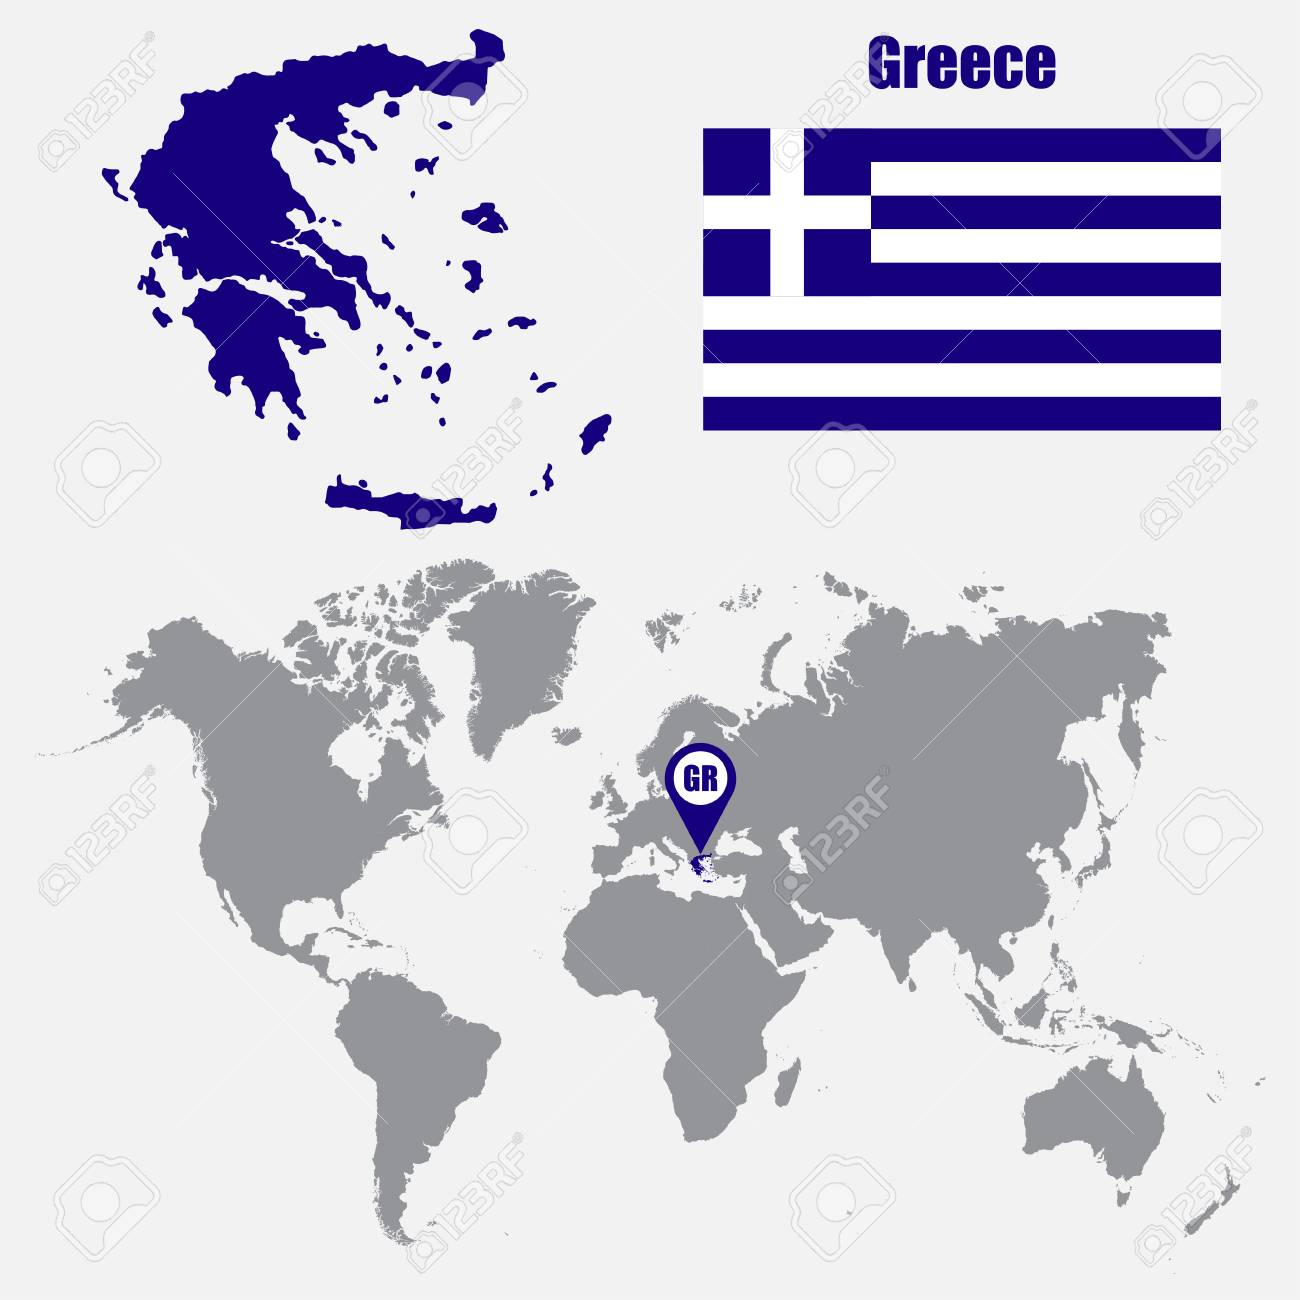 Greece On World Map on greece on europe map, greece map with attractions, athens greece world map, greece on middle east map, athens greece on map, greece on earth, greece on a map,